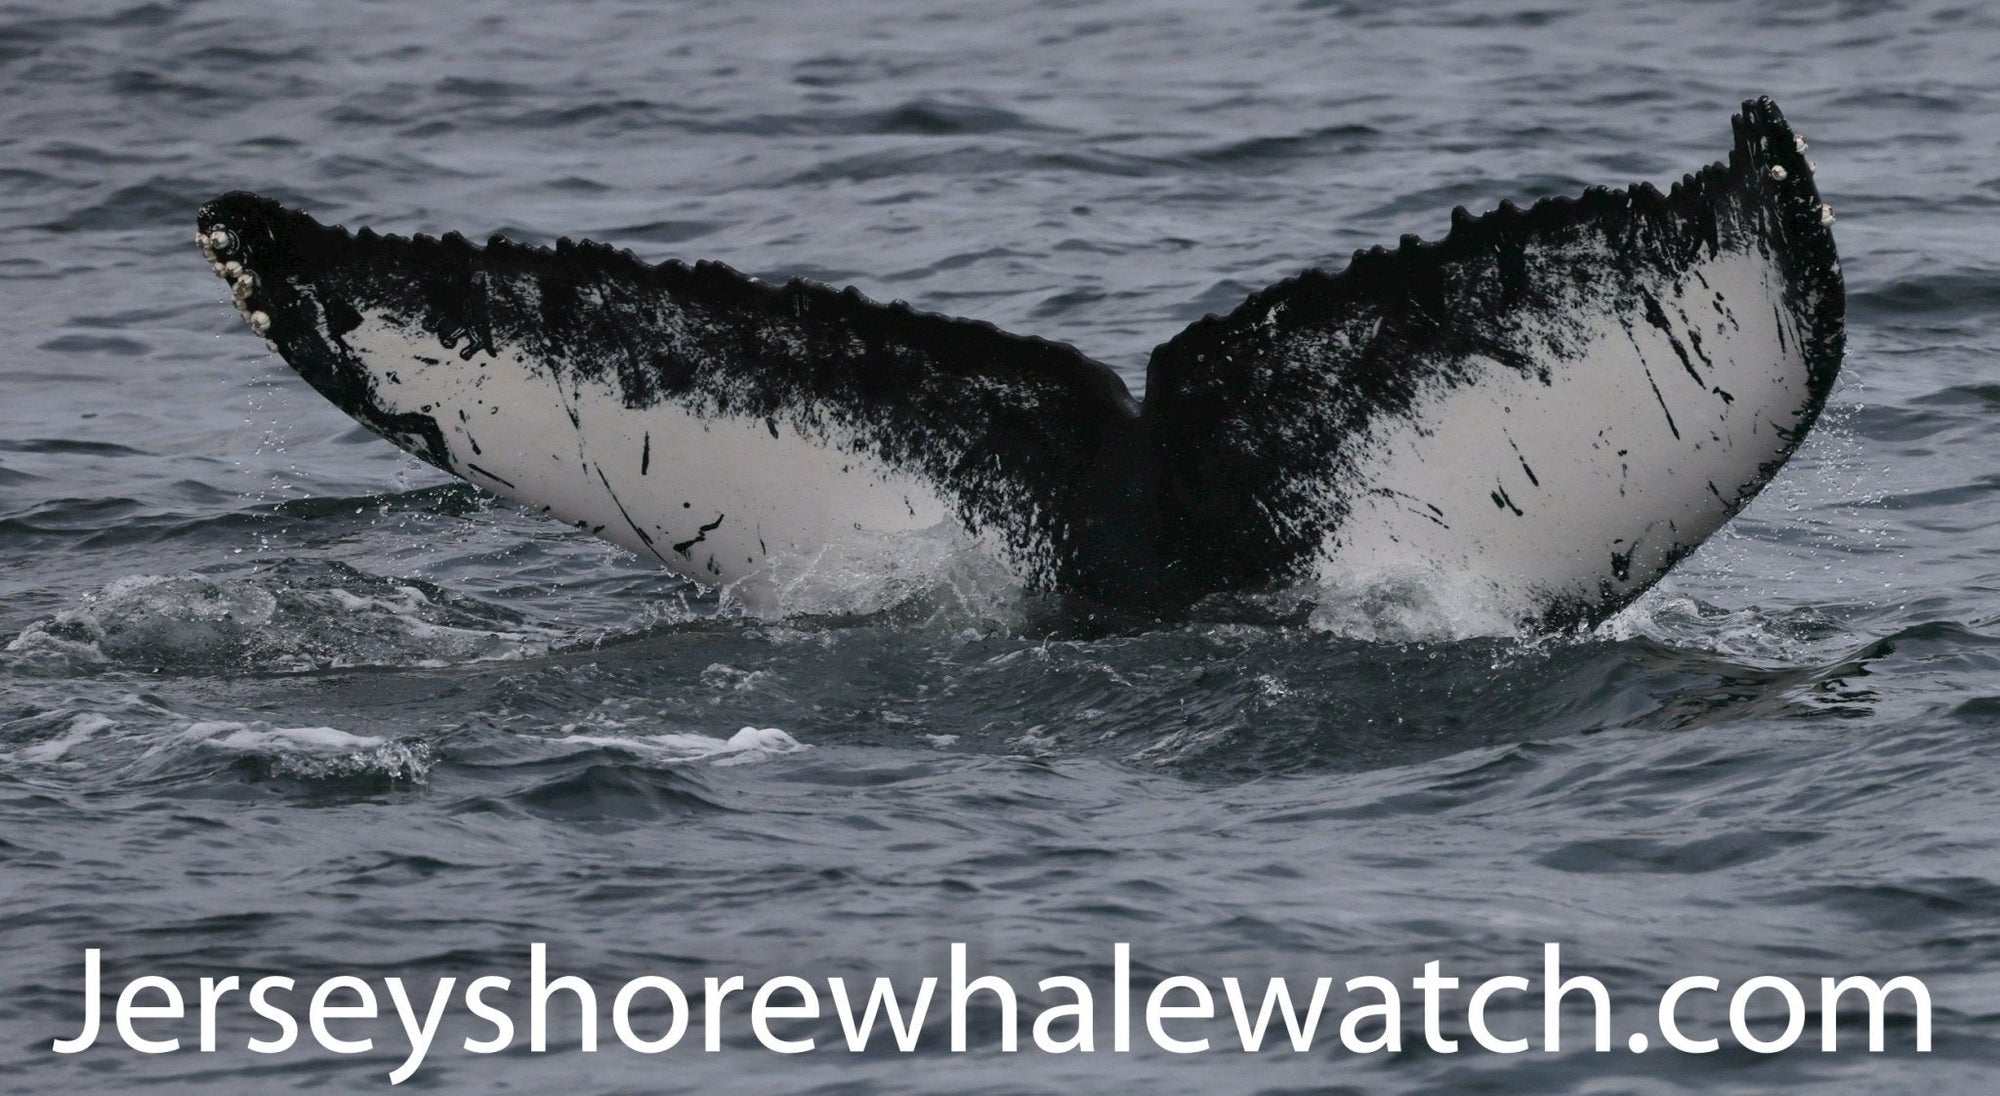 12 Hour Off Shore Whale Watching Adventure Point Pleasant Marina - Bill McKim Photography -Jersey Shore whale watch tours